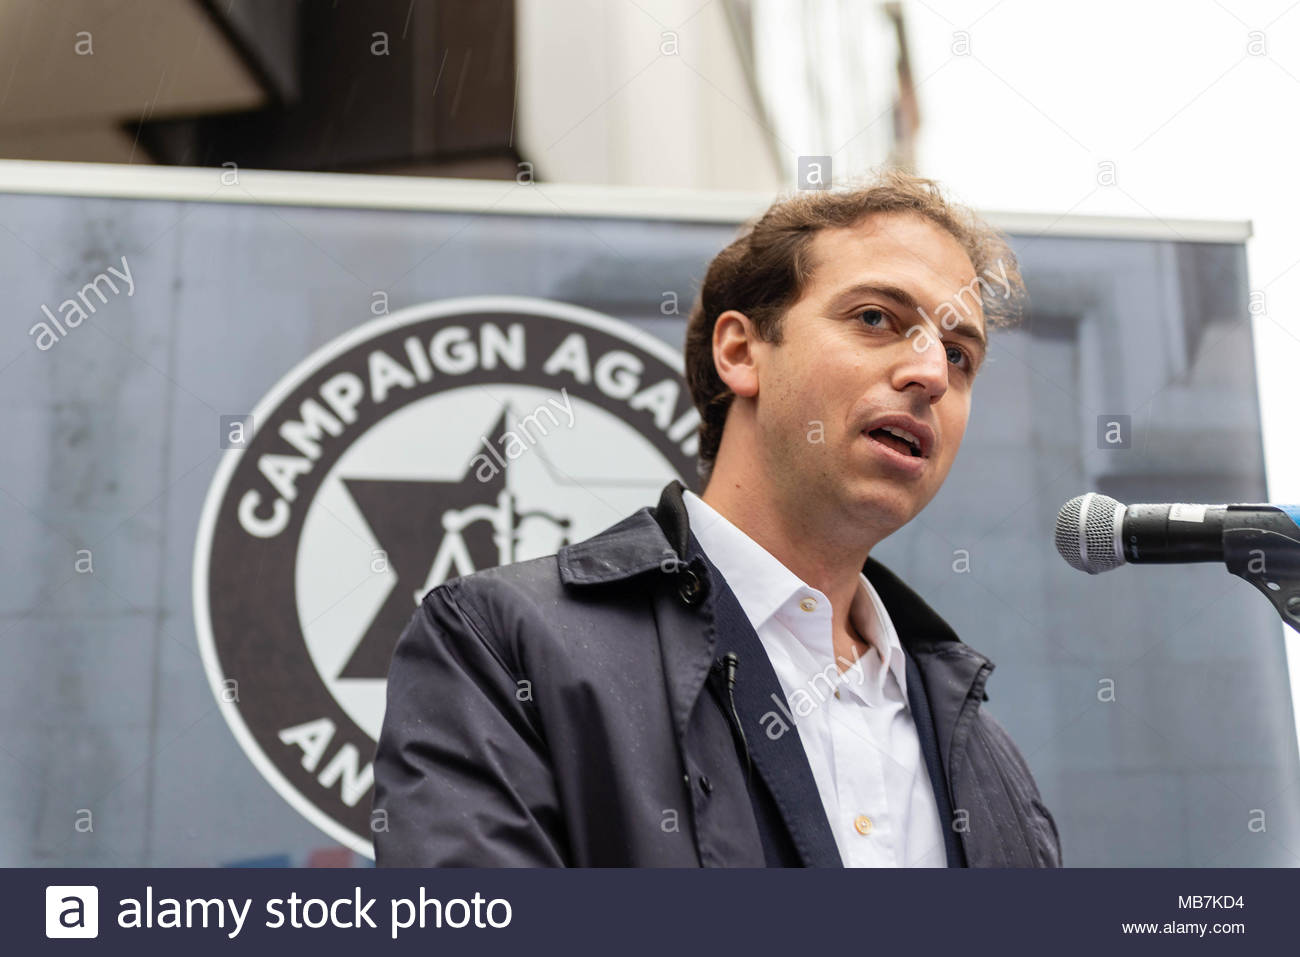 London, Great Britain, 08 April, 2018. Gideon Falter addressing the crowd. Hundreds of the UK's Jewish community and allies protested outside the Labour Party offices over the AntiSemitic crisis within the party and the4 lack of action to combat it. David Nash/Alamy Live News - Stock Image